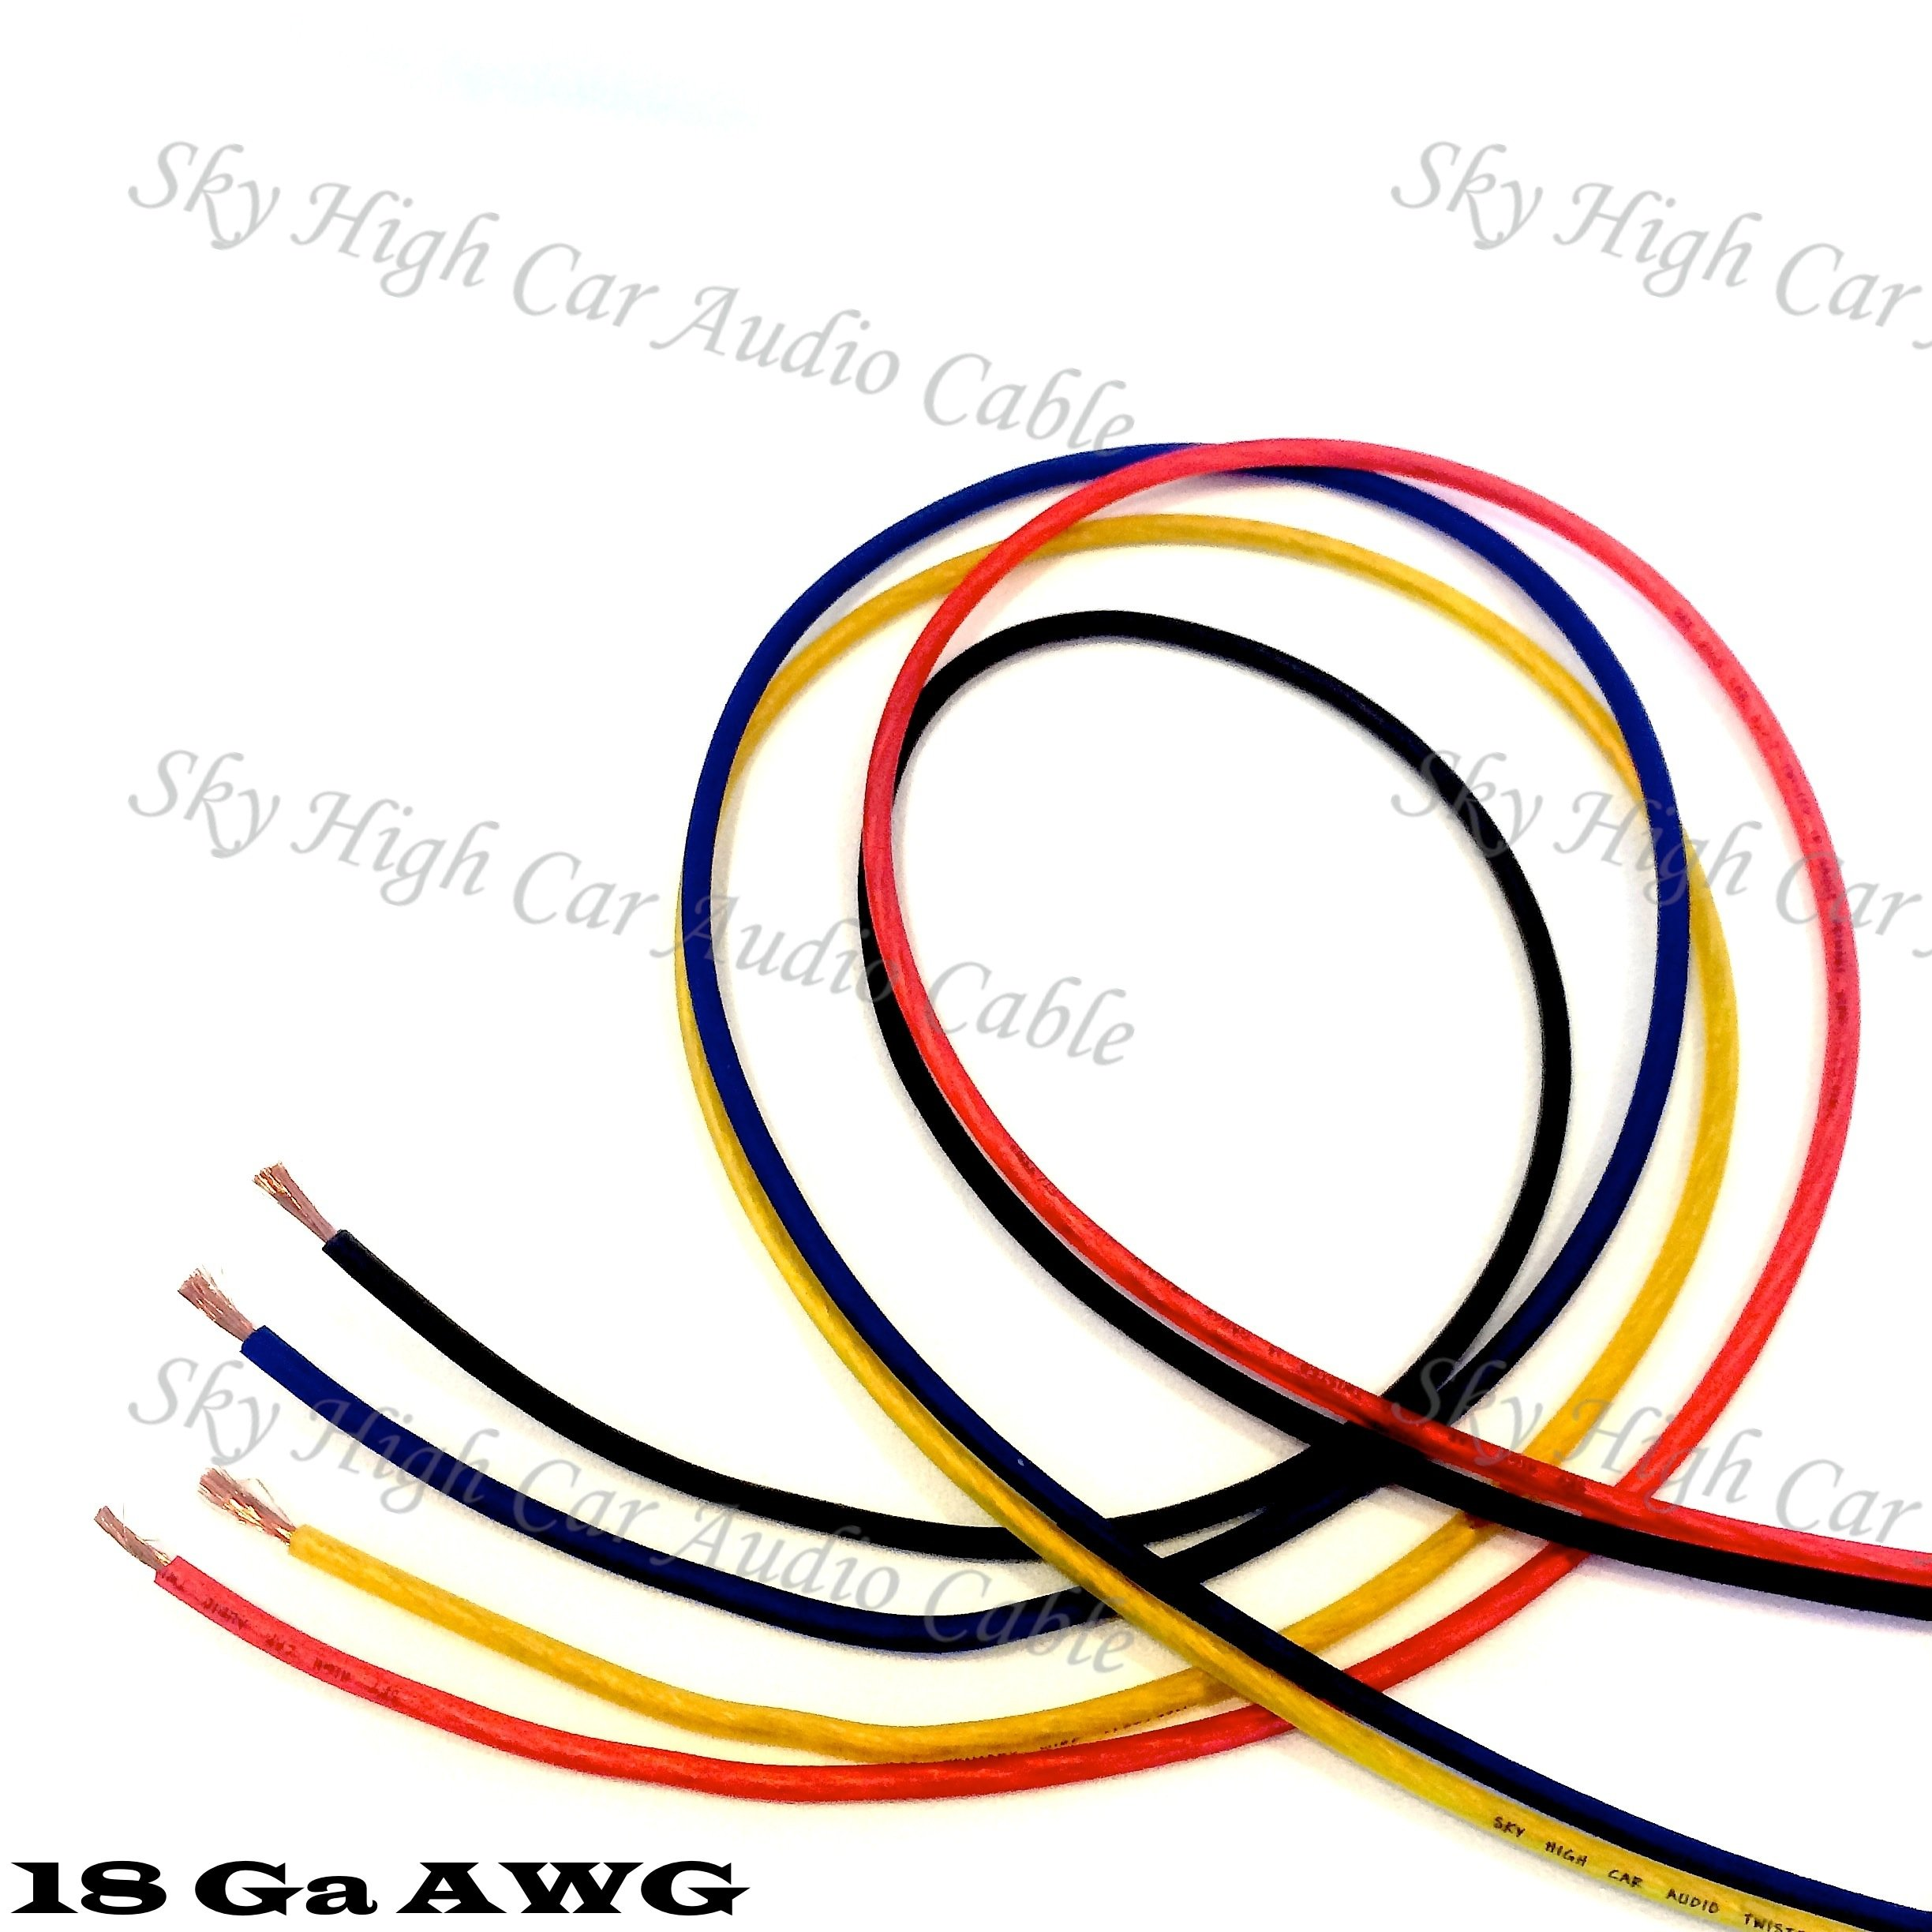 100' EACH RED, BLUE, BLACK, YELLOW - 400 ft 18 Ga AWG Primary / Remote Wire Lead